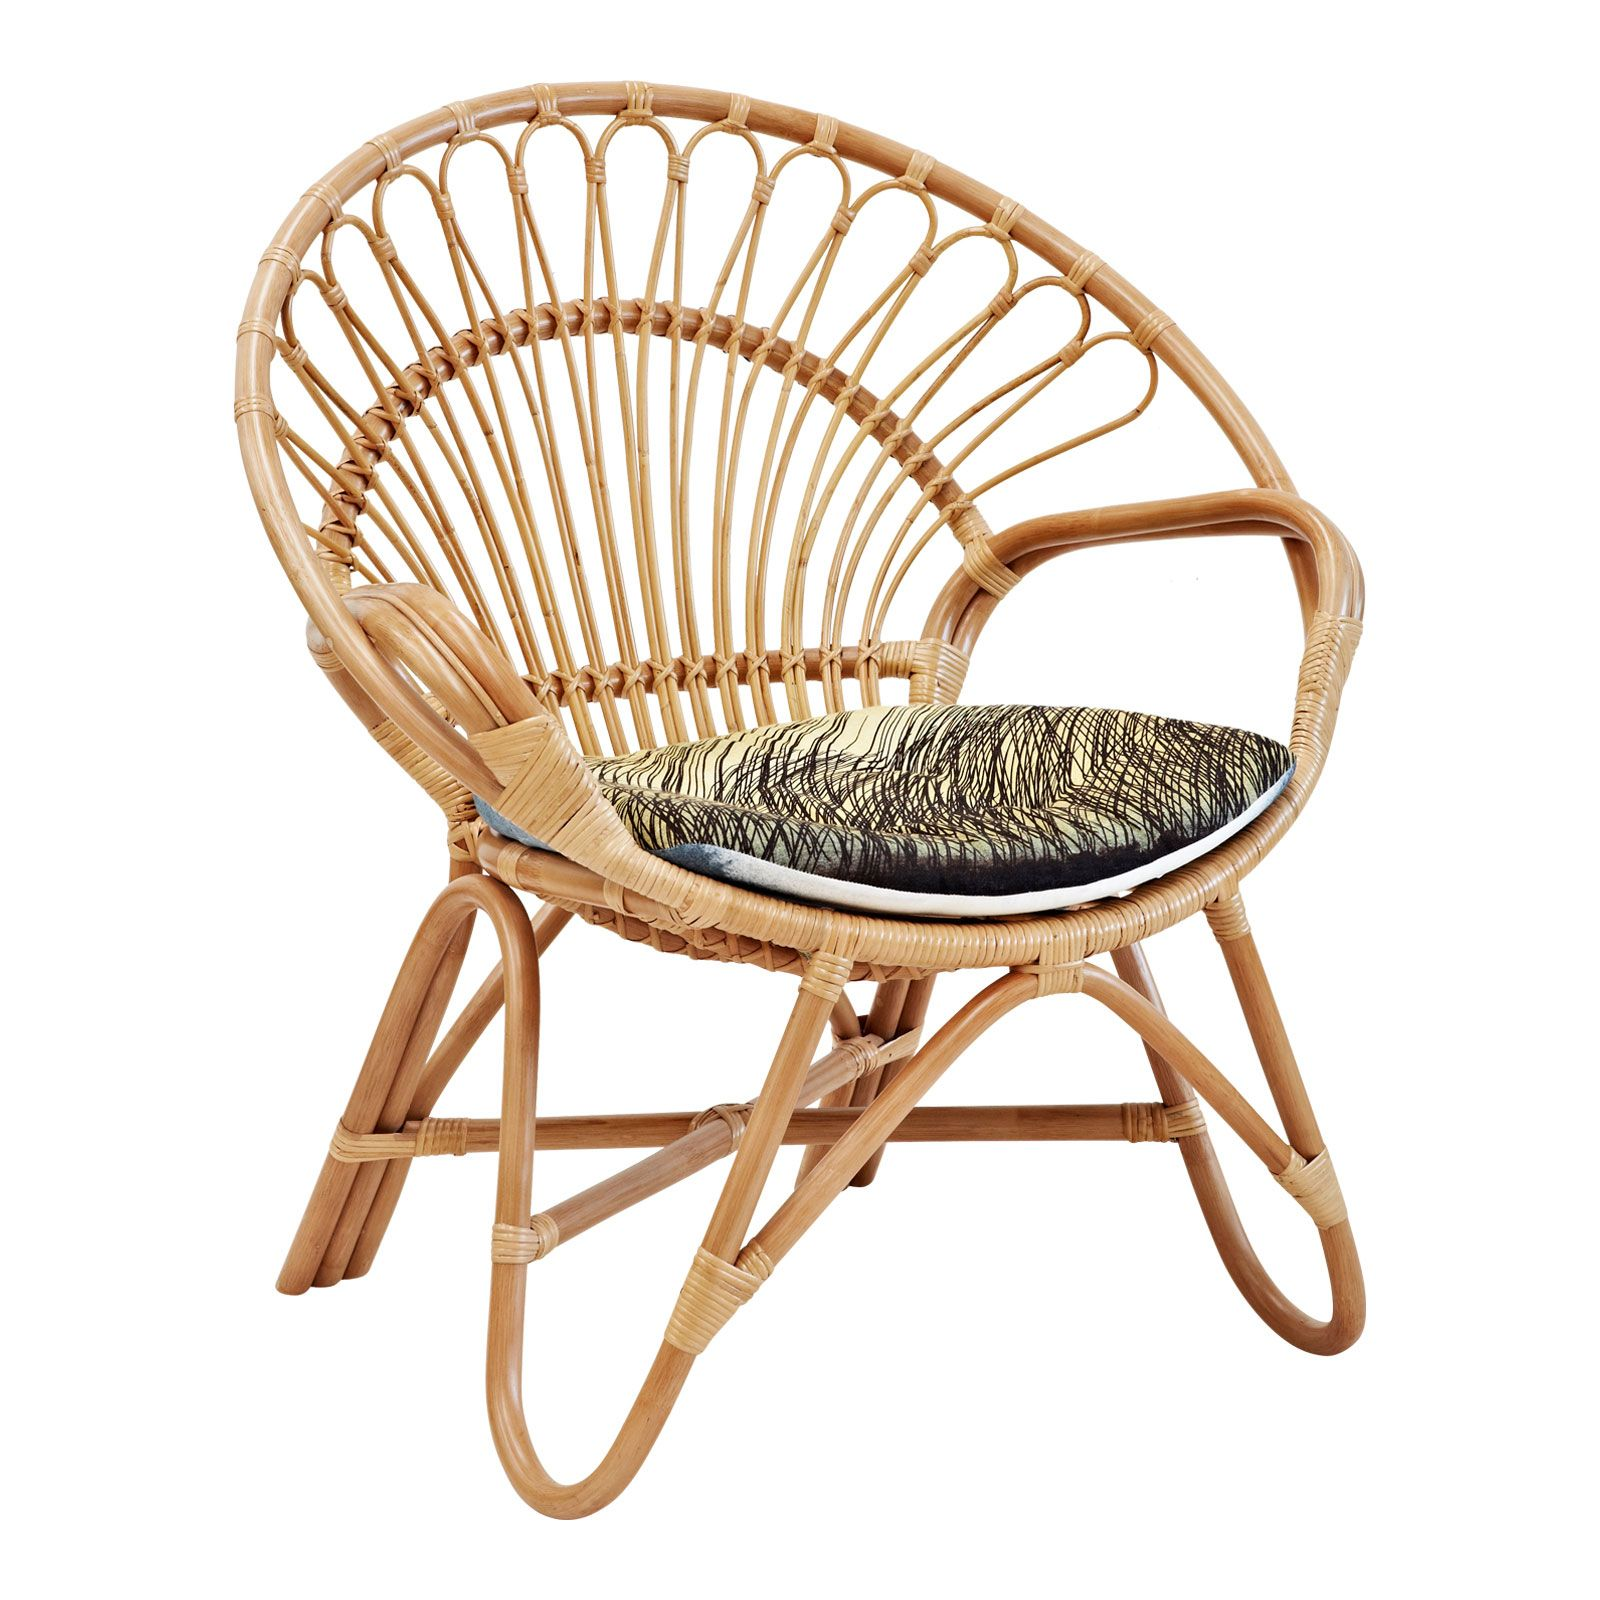 Circular Chair Appealing Rattan Chair For Outdoor Or Indoor Furniture